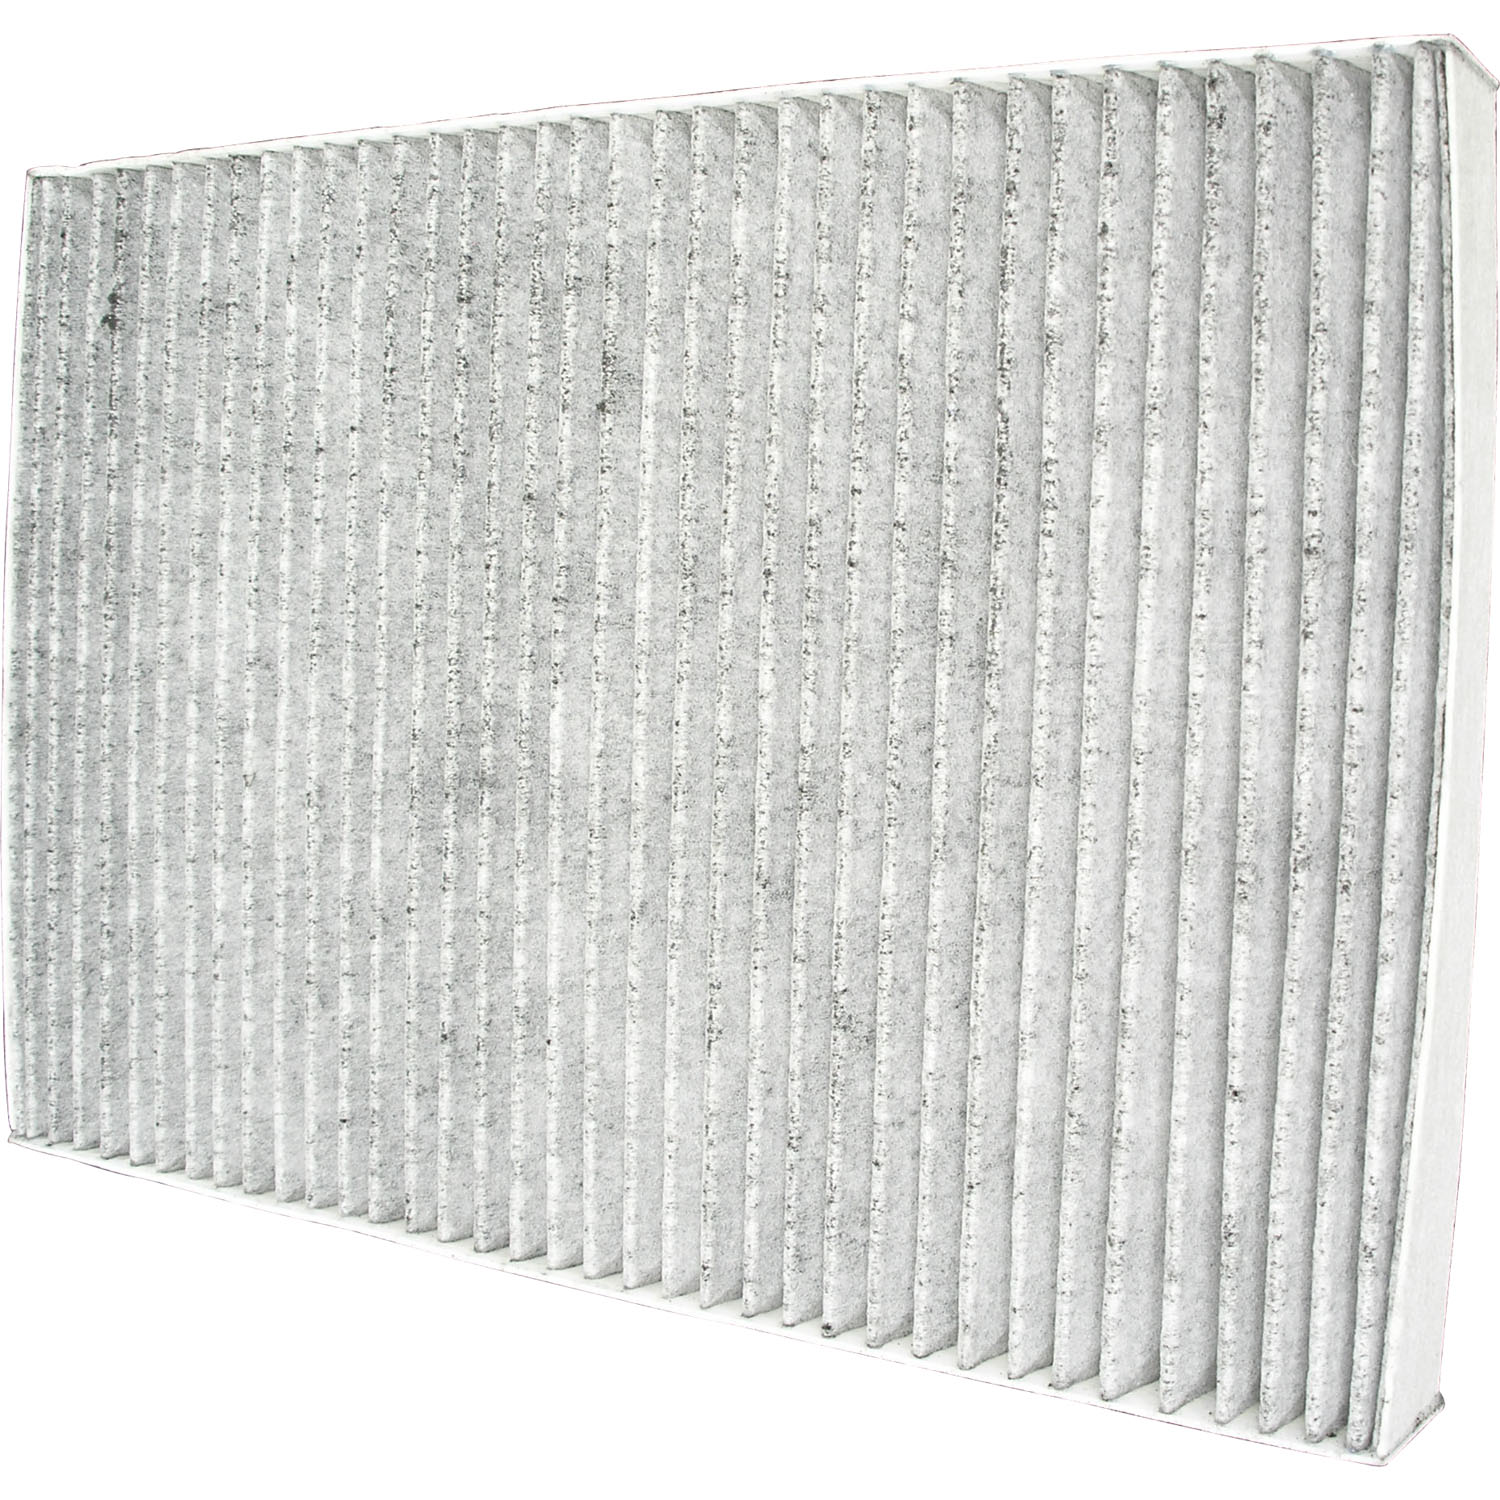 Particulate Cabin Air Filter CRY 300 2.7 3.5 05